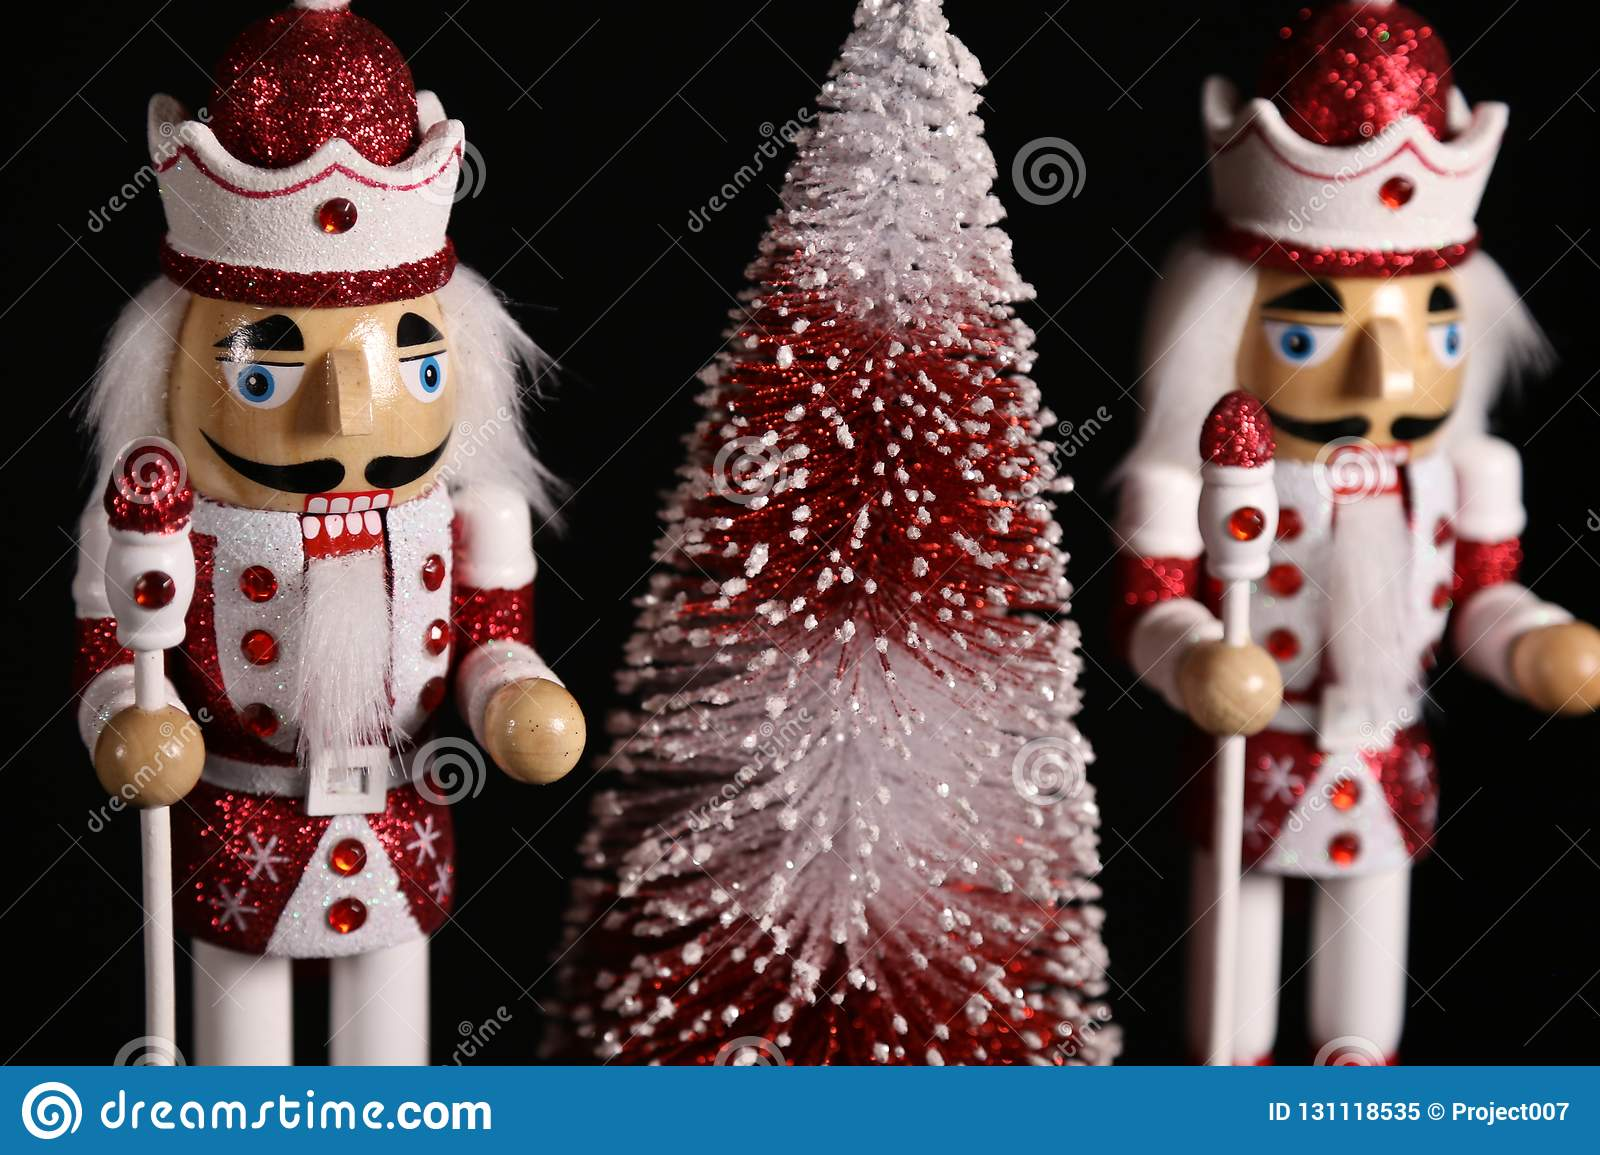 Christmas Season And Manufacturing Christmas Red Decorations Stock Image Image Of Nutcracker December 131118535